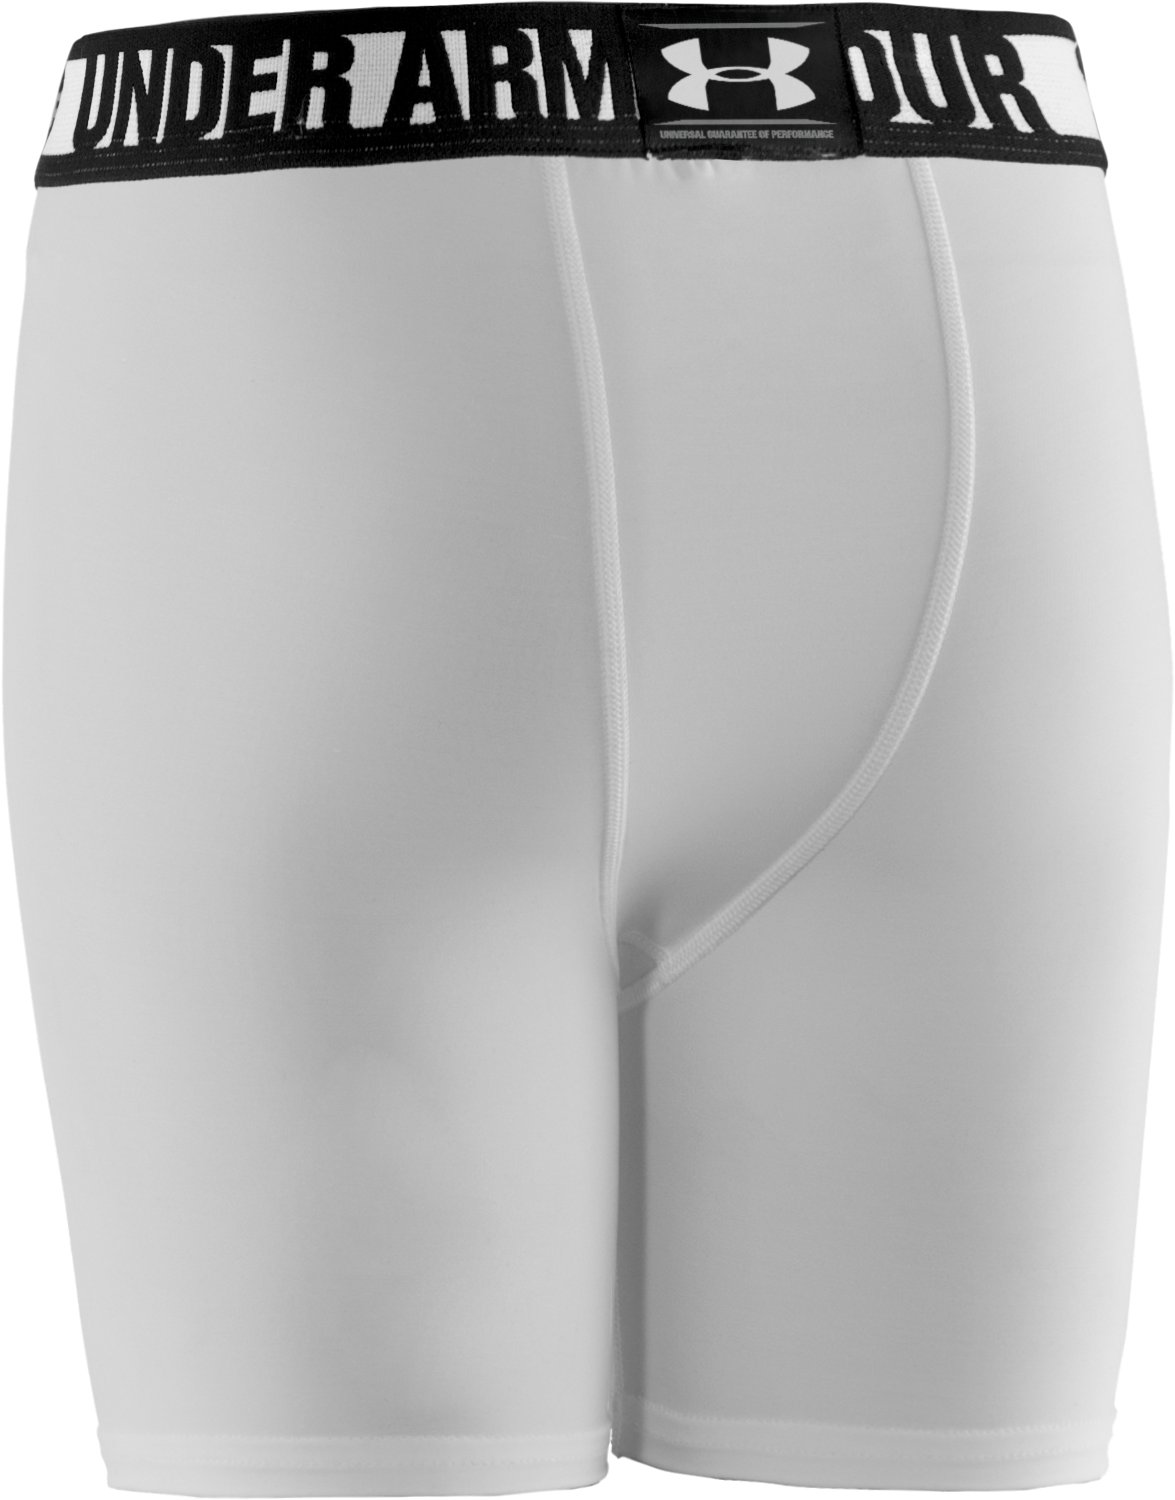 Boys' HeatGear® Sonic Fitted Shorts W/ Cup Combo, White